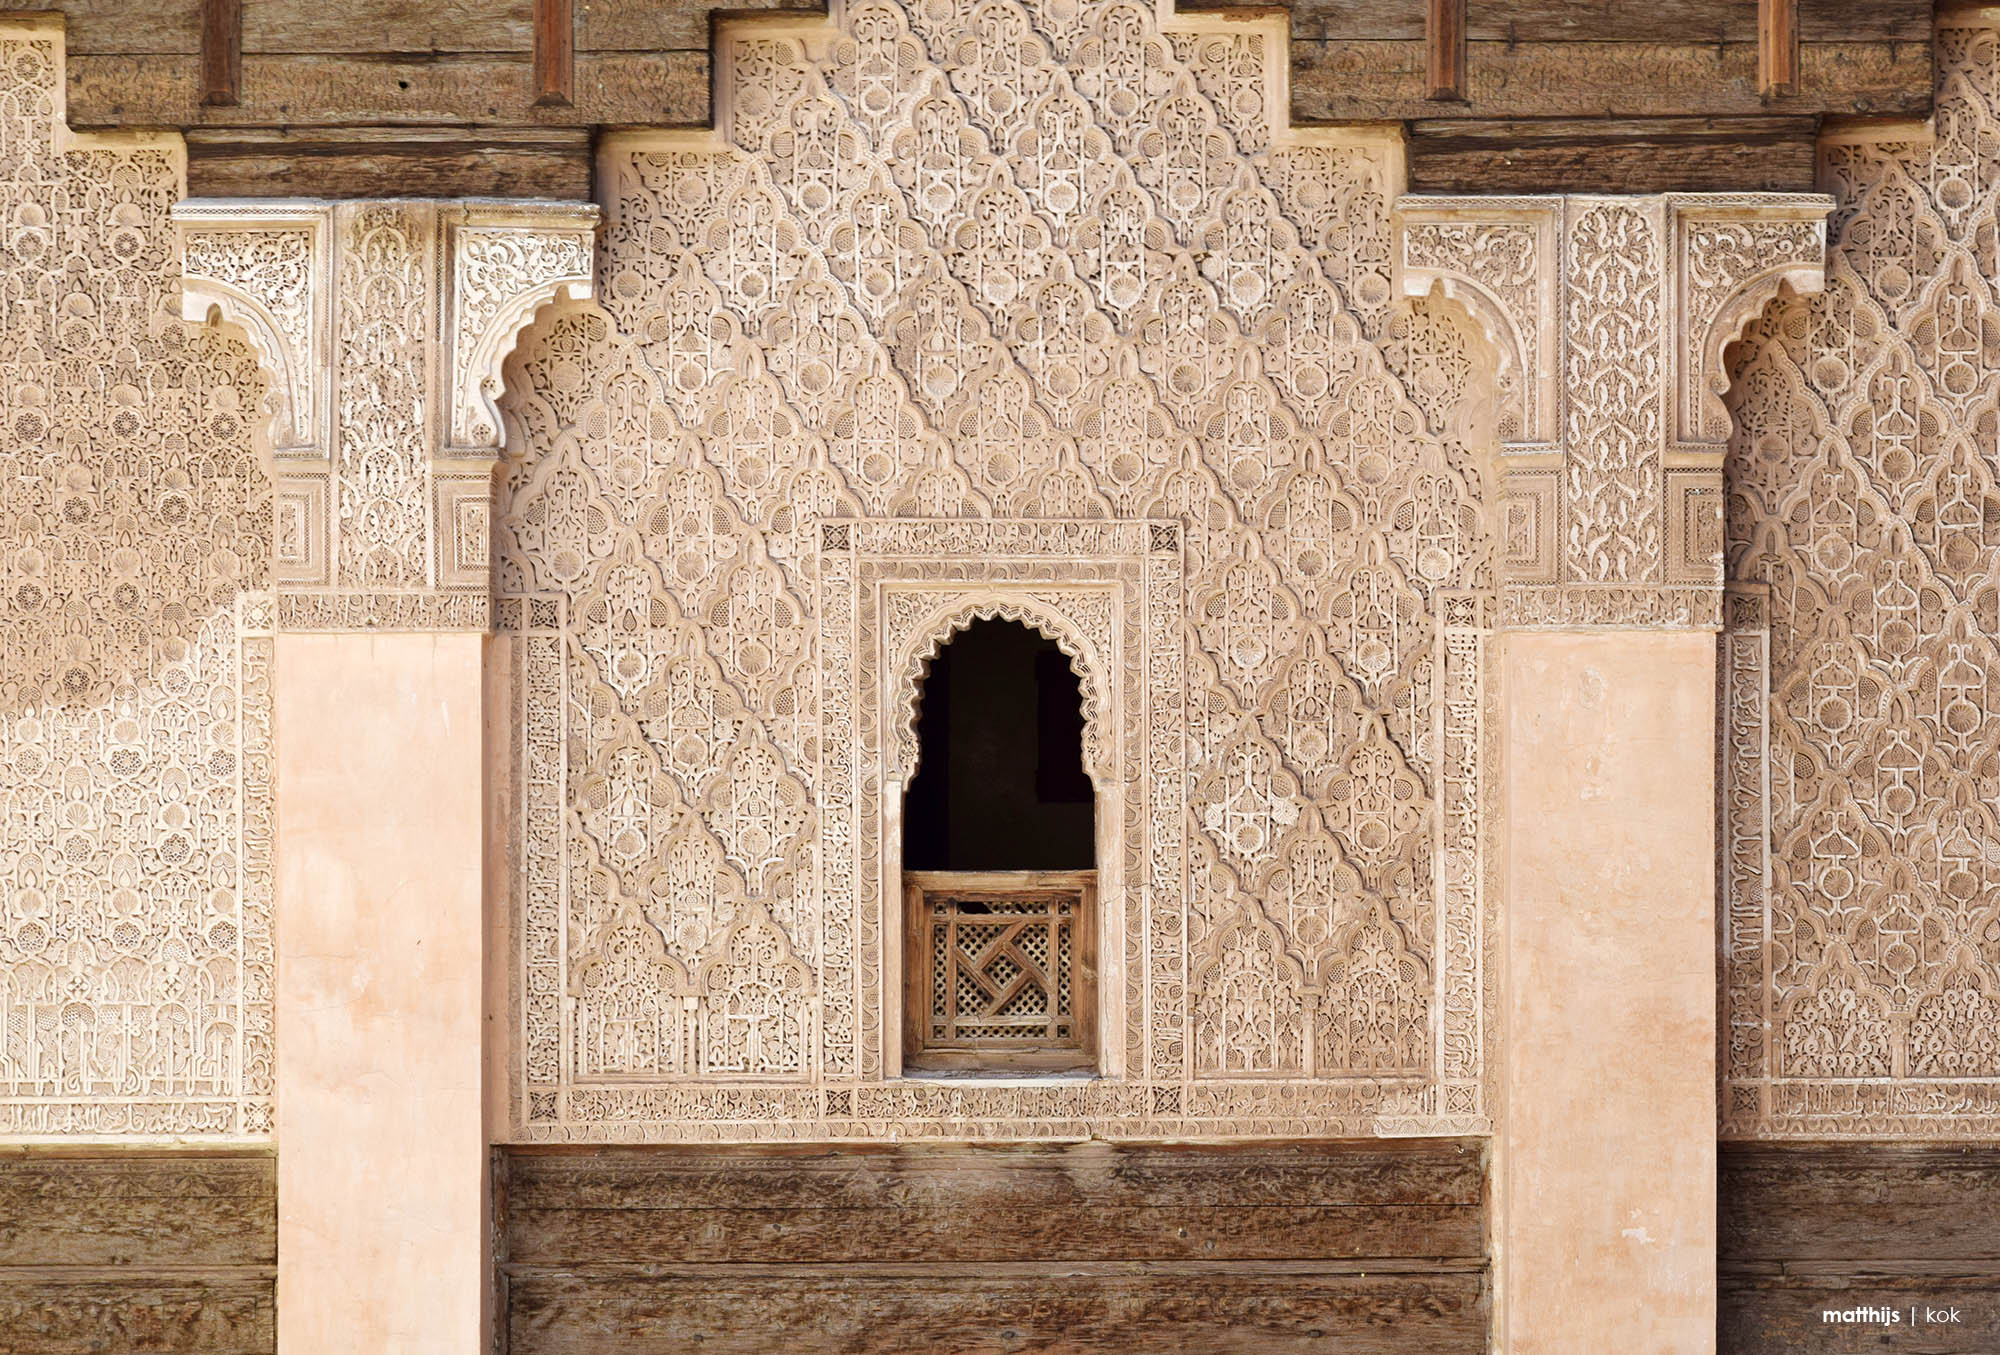 Ben Youssef Madrasa, Marrakech | Photo by Matthijs Kok